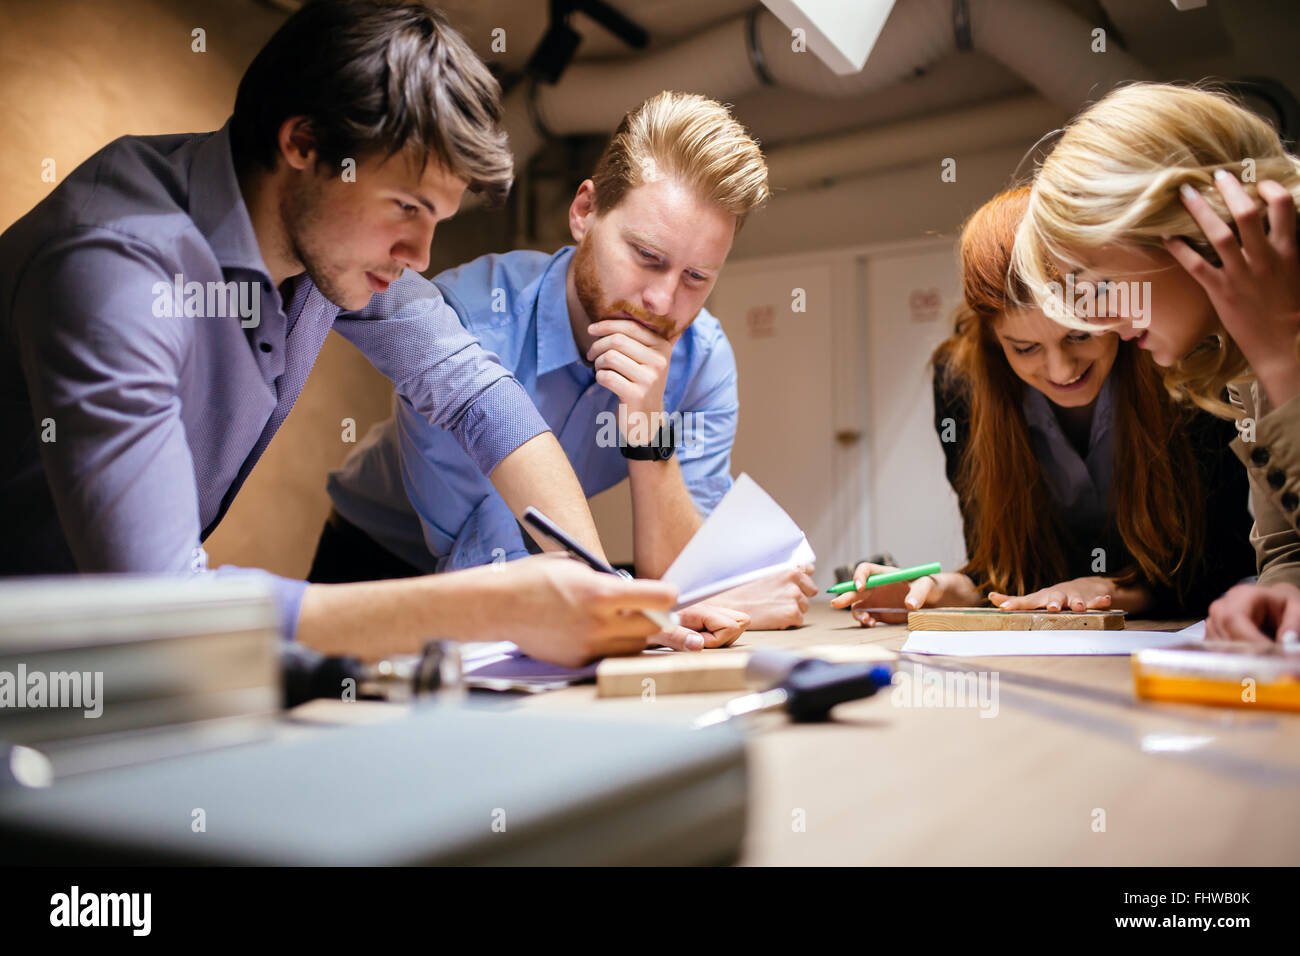 Group of creative designers brainstorming and working on a project - Stock Image